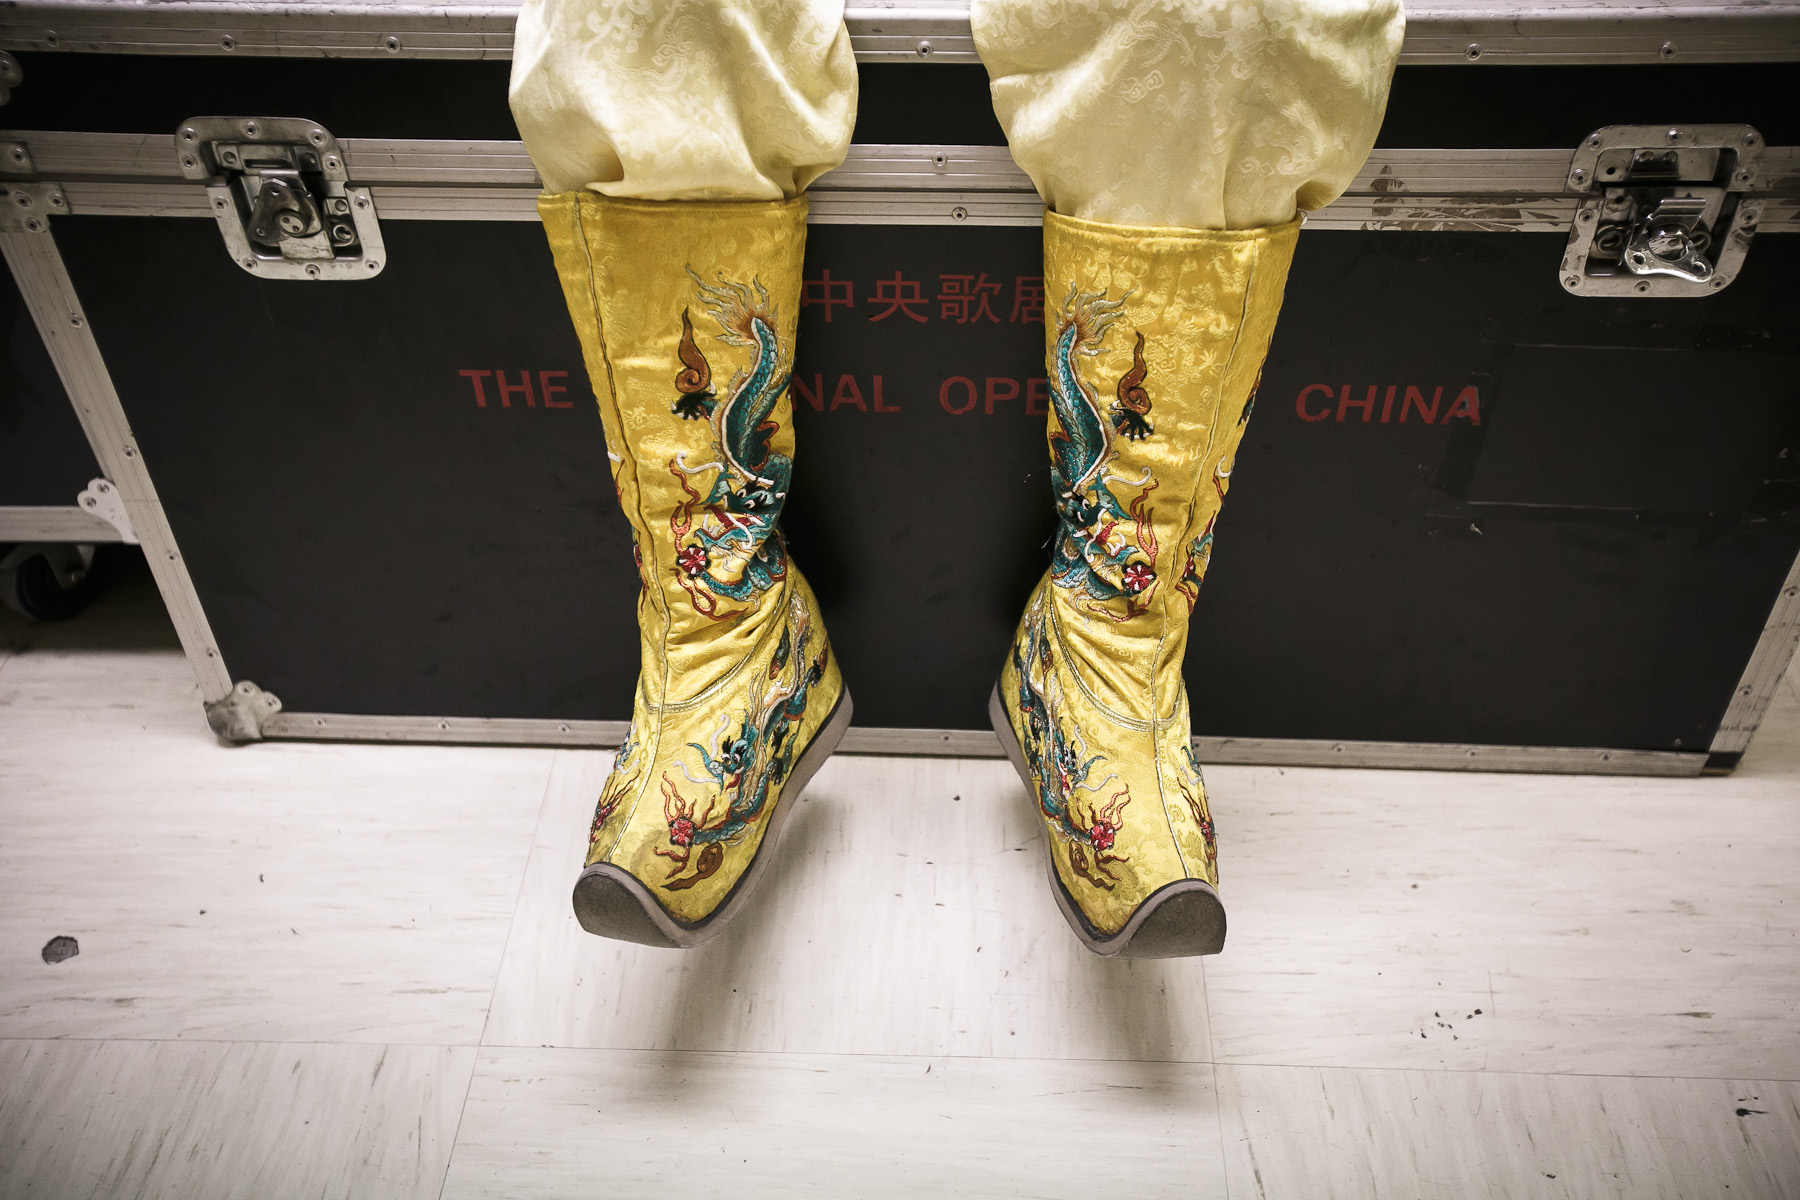 Wang Hai Min who plays the emperor sits on a crate backstage before his performance in China National Opera House production of Giacomo Puccini\'s Turandot in Cankarjev dom Cultural & Congress center in Ljubljana, Slovenia, Sep. 1, 2015.